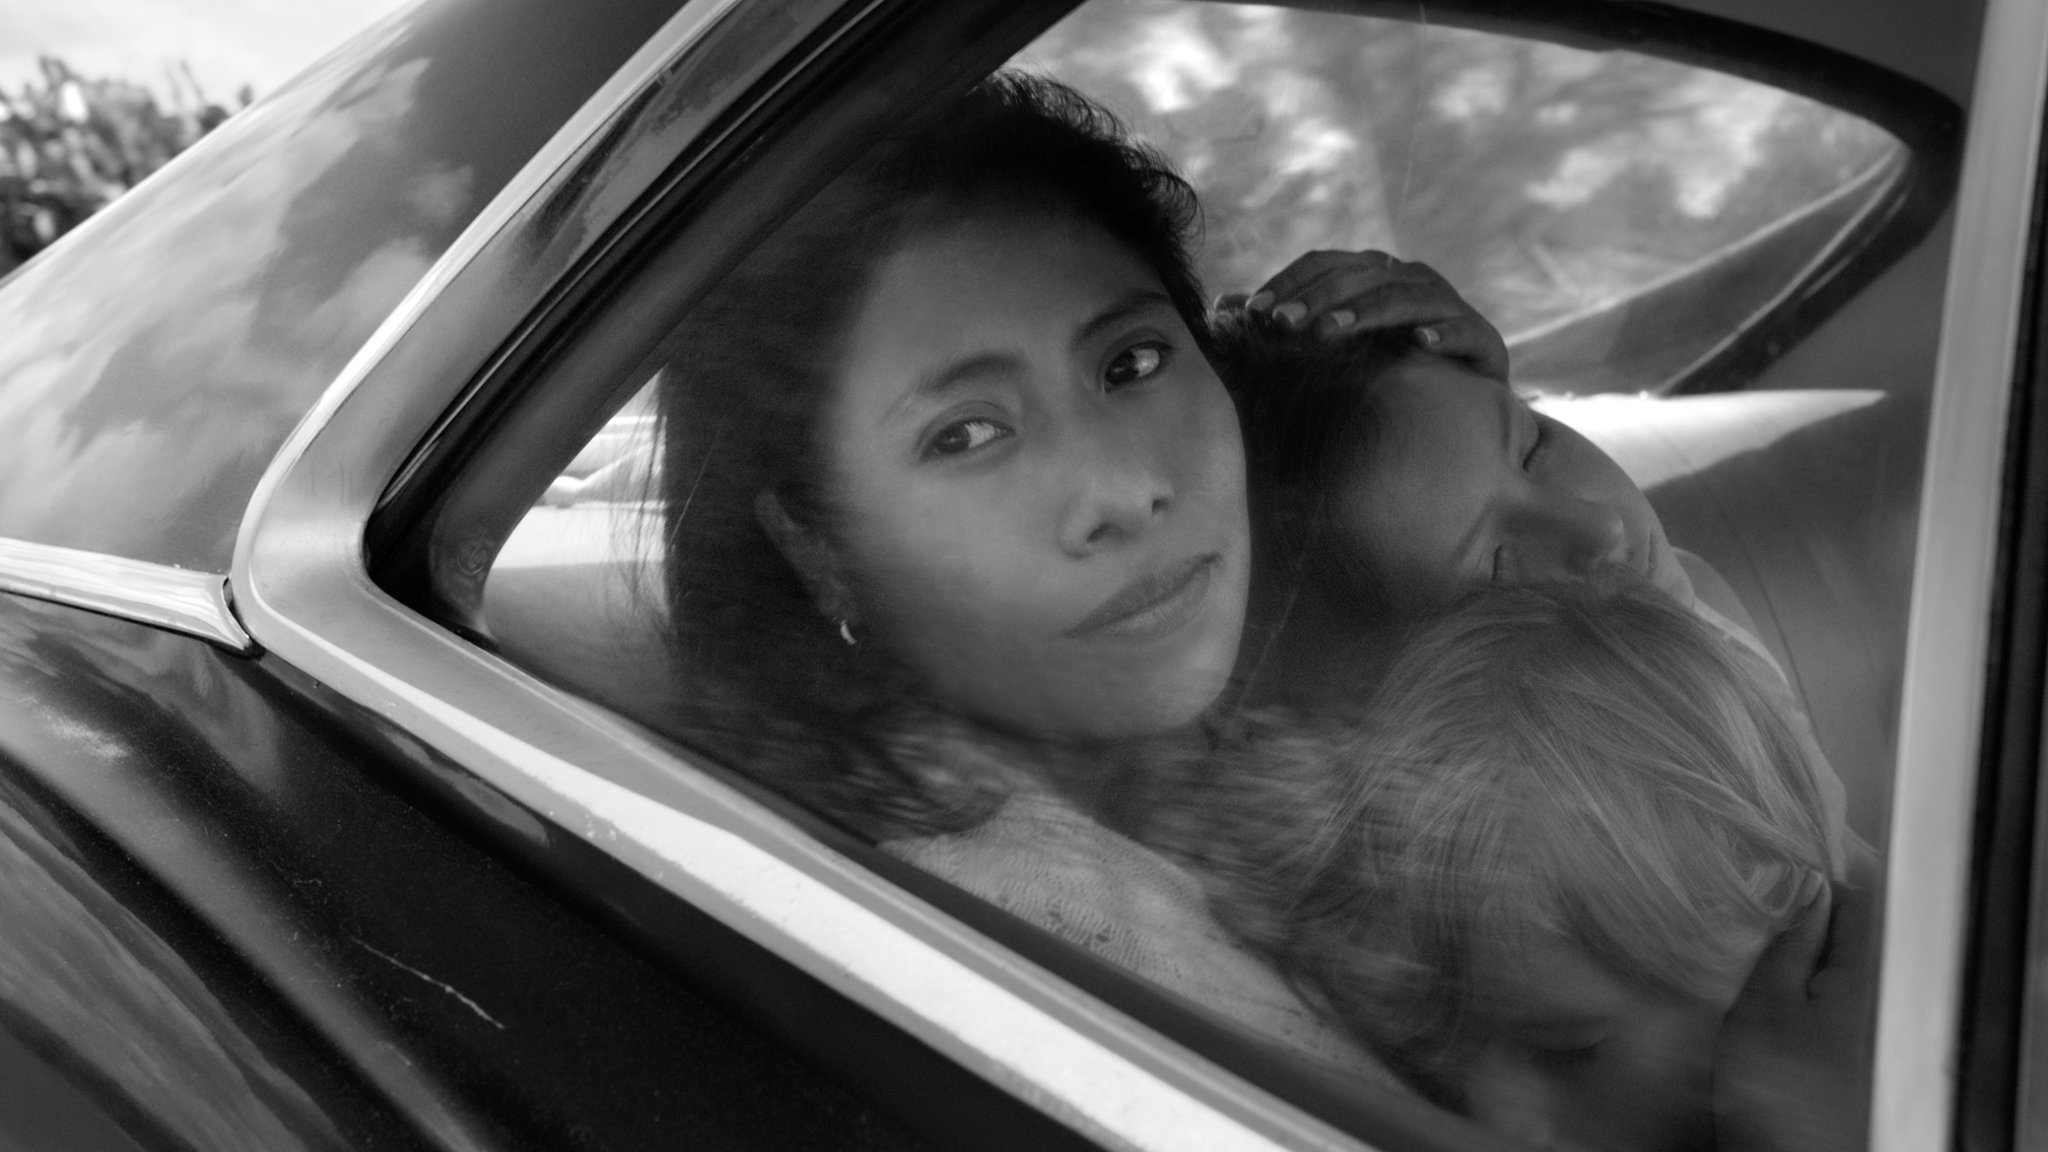 Roma: Netflix film showered with critics' awards as Oscars race heats up